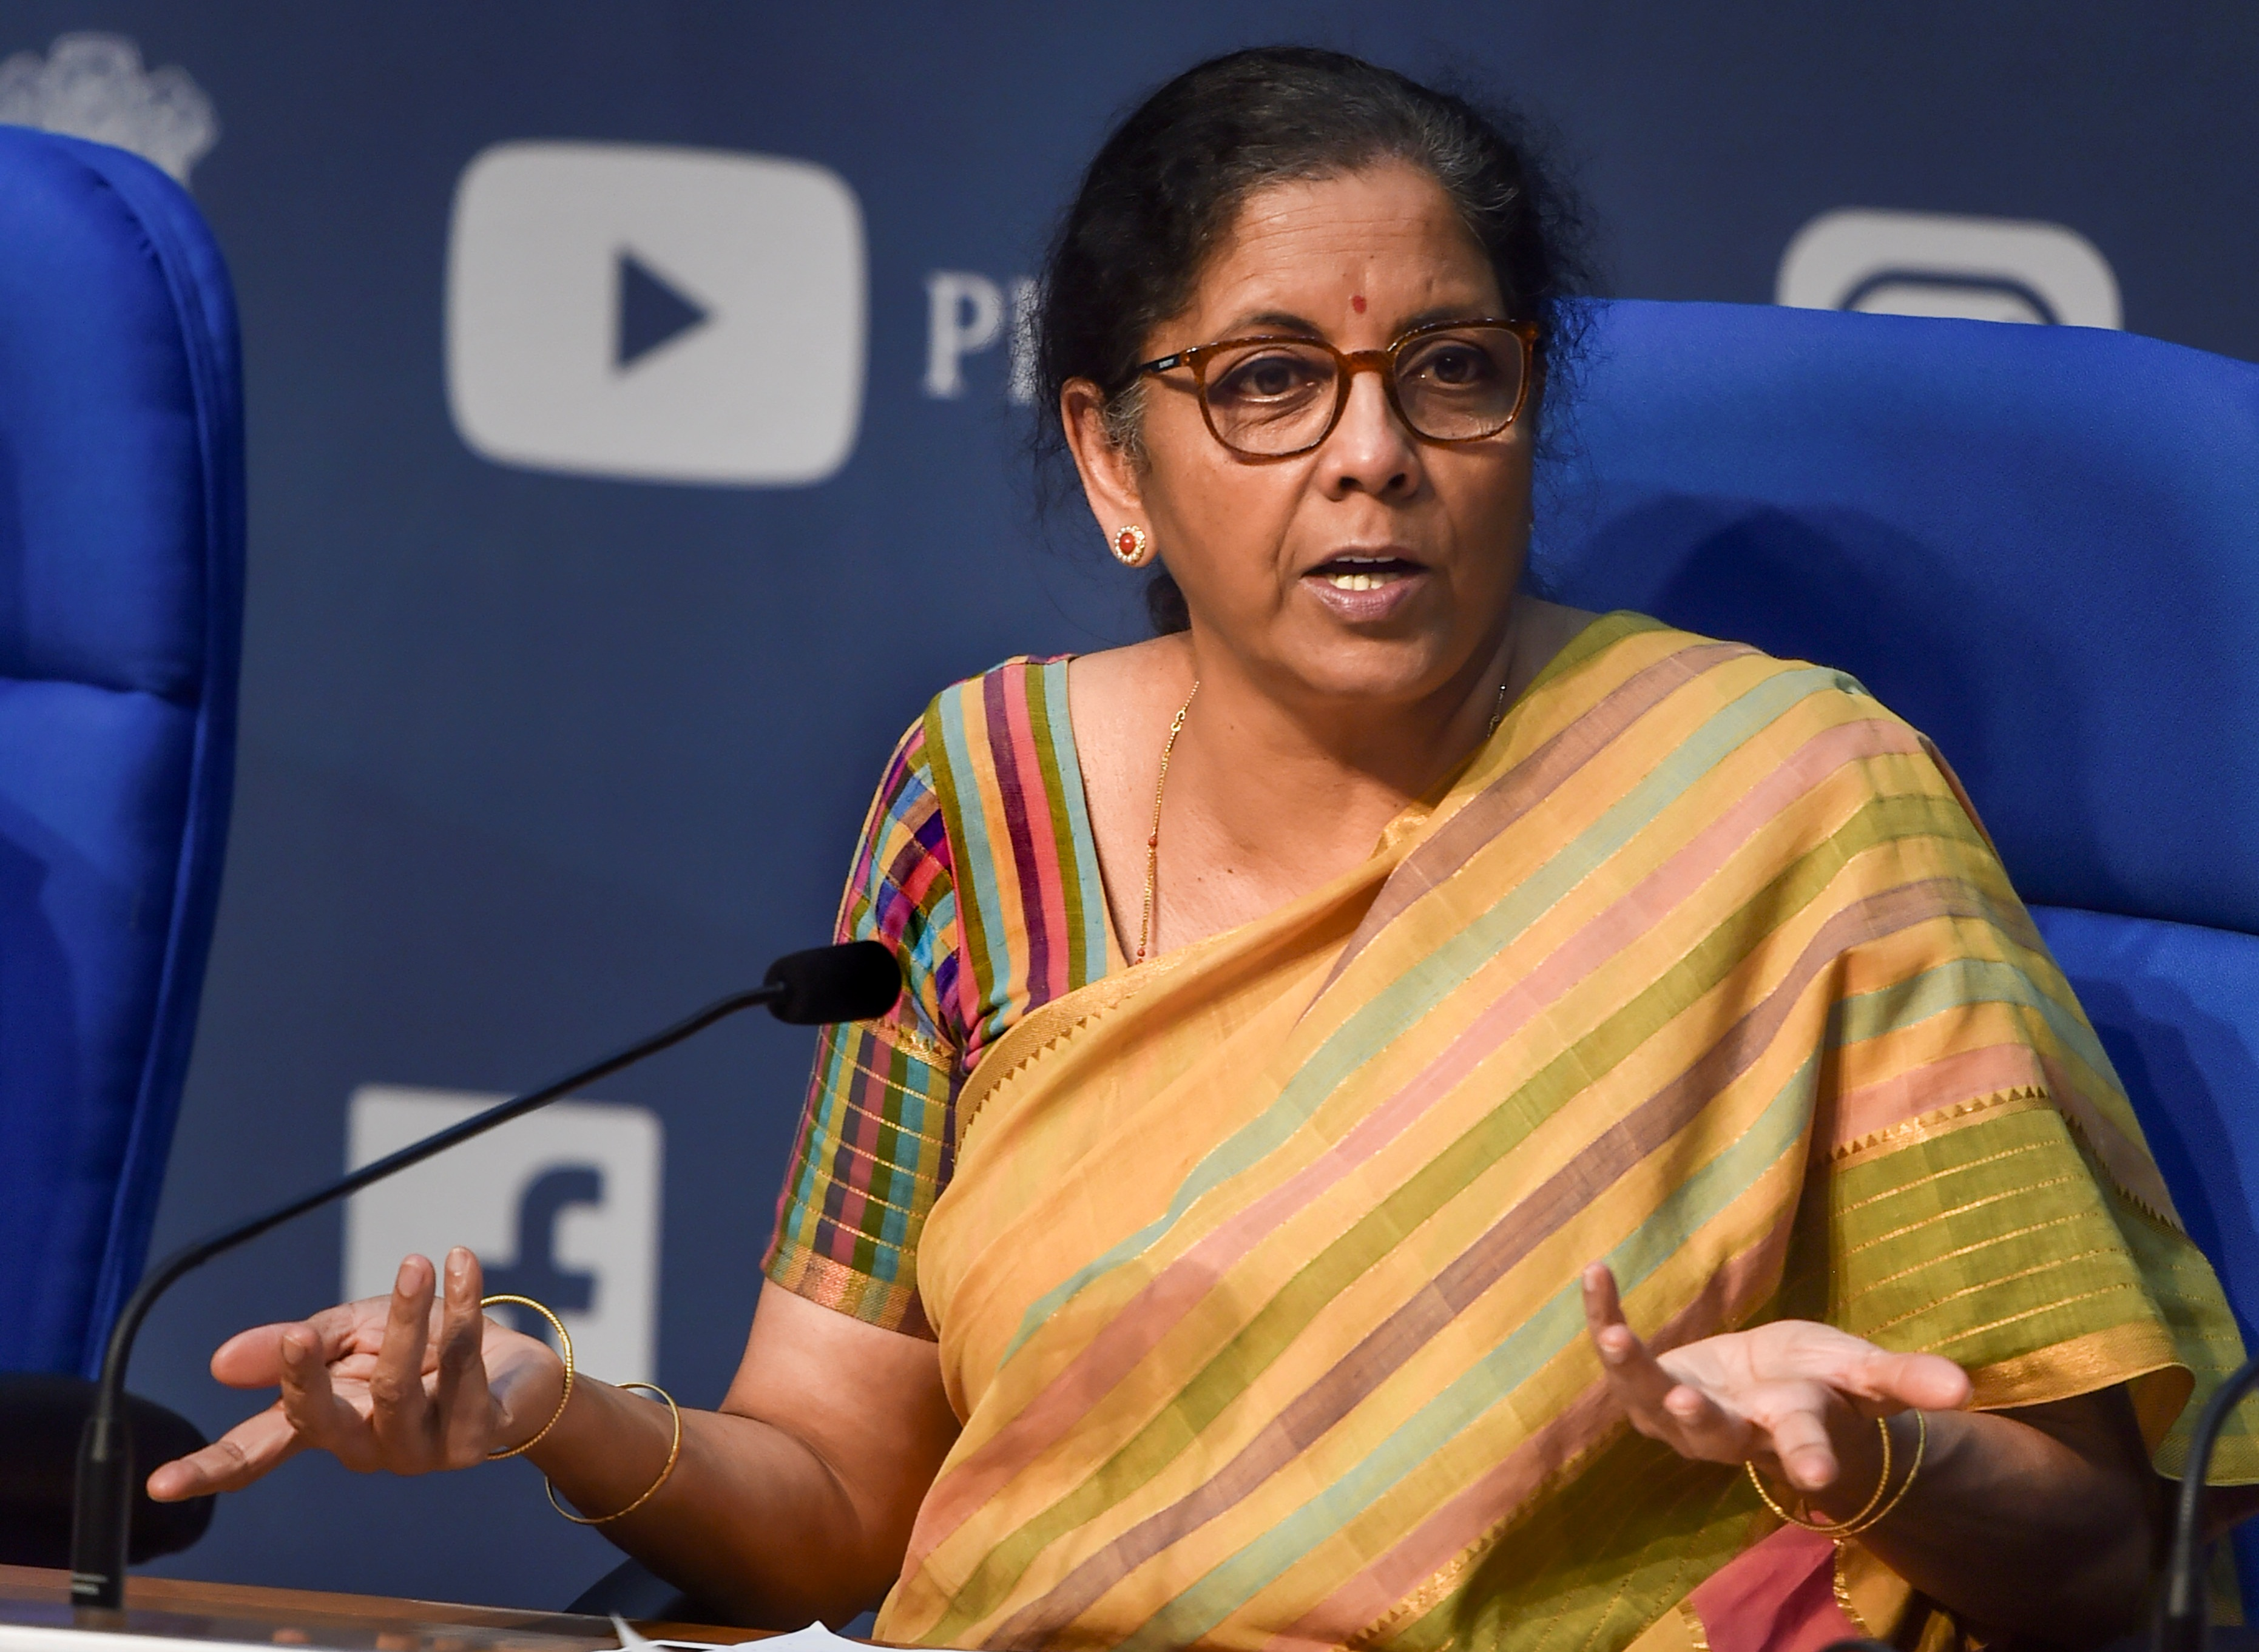 Union Finance Minister Nirmala Sitharaman addresses a press conference, at NMC in New Delhi, Thursday, May 14, 2020.